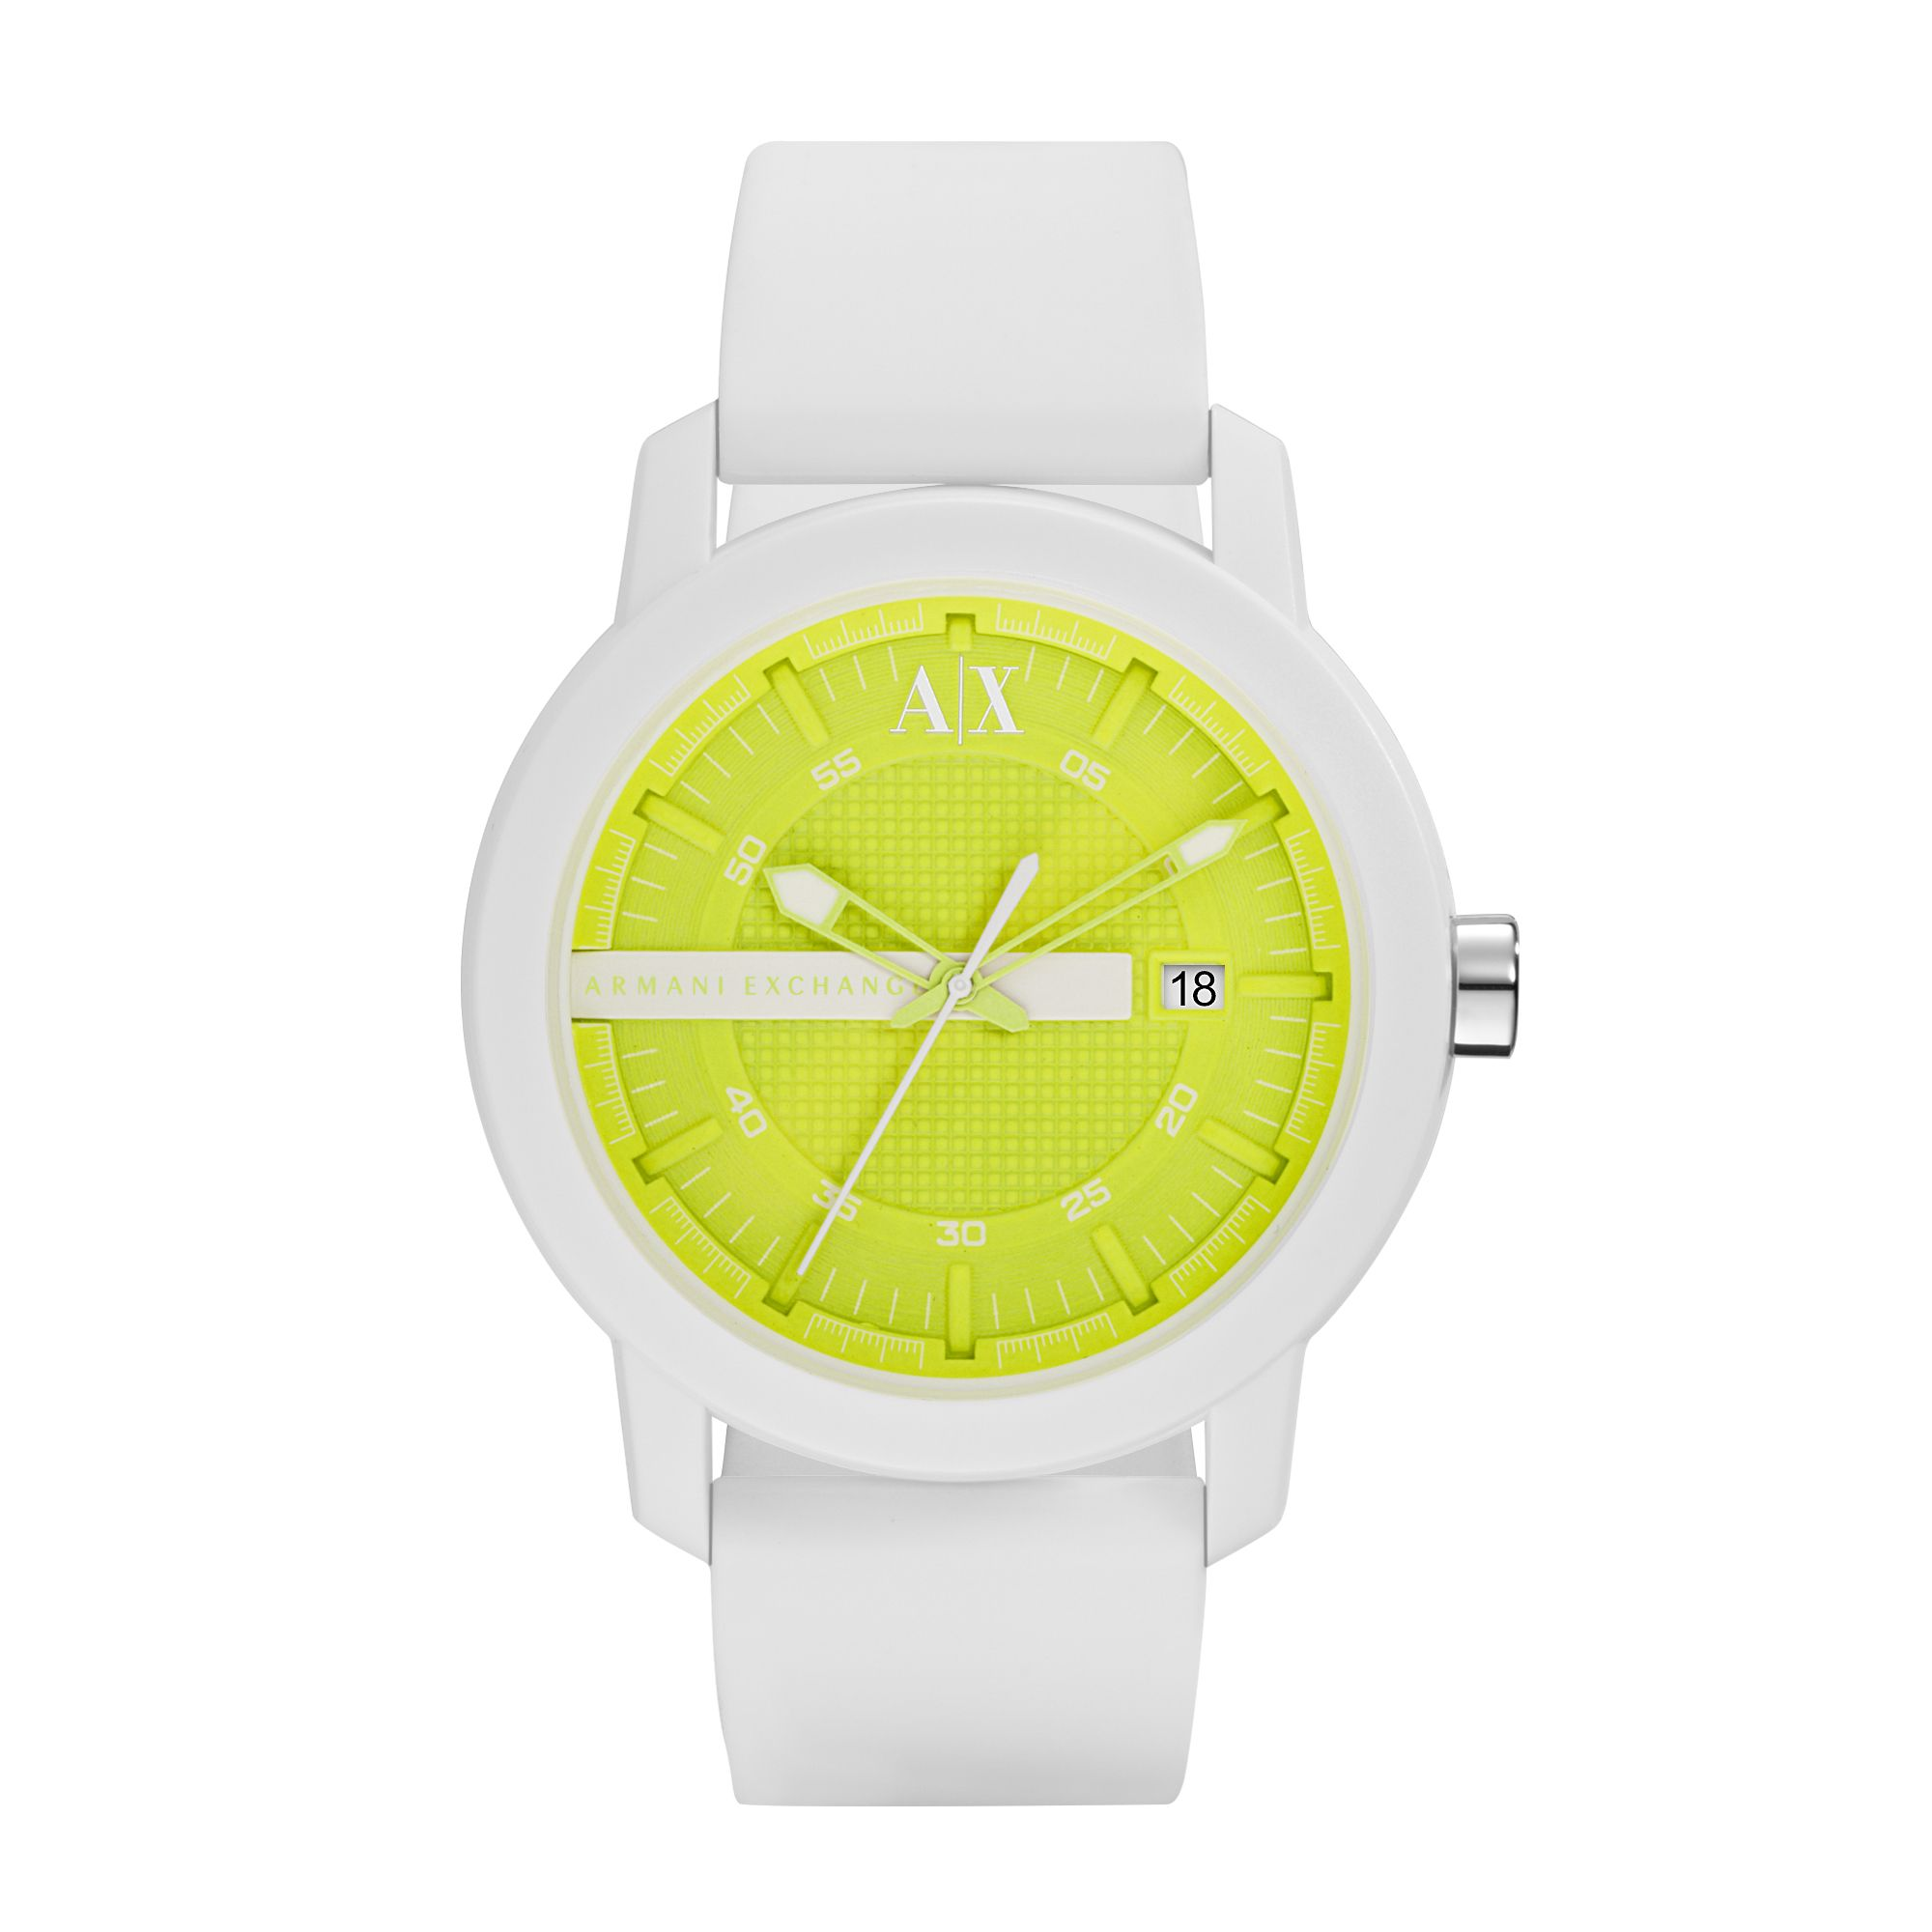 AX1241 Active White Silicone Unisex Watch